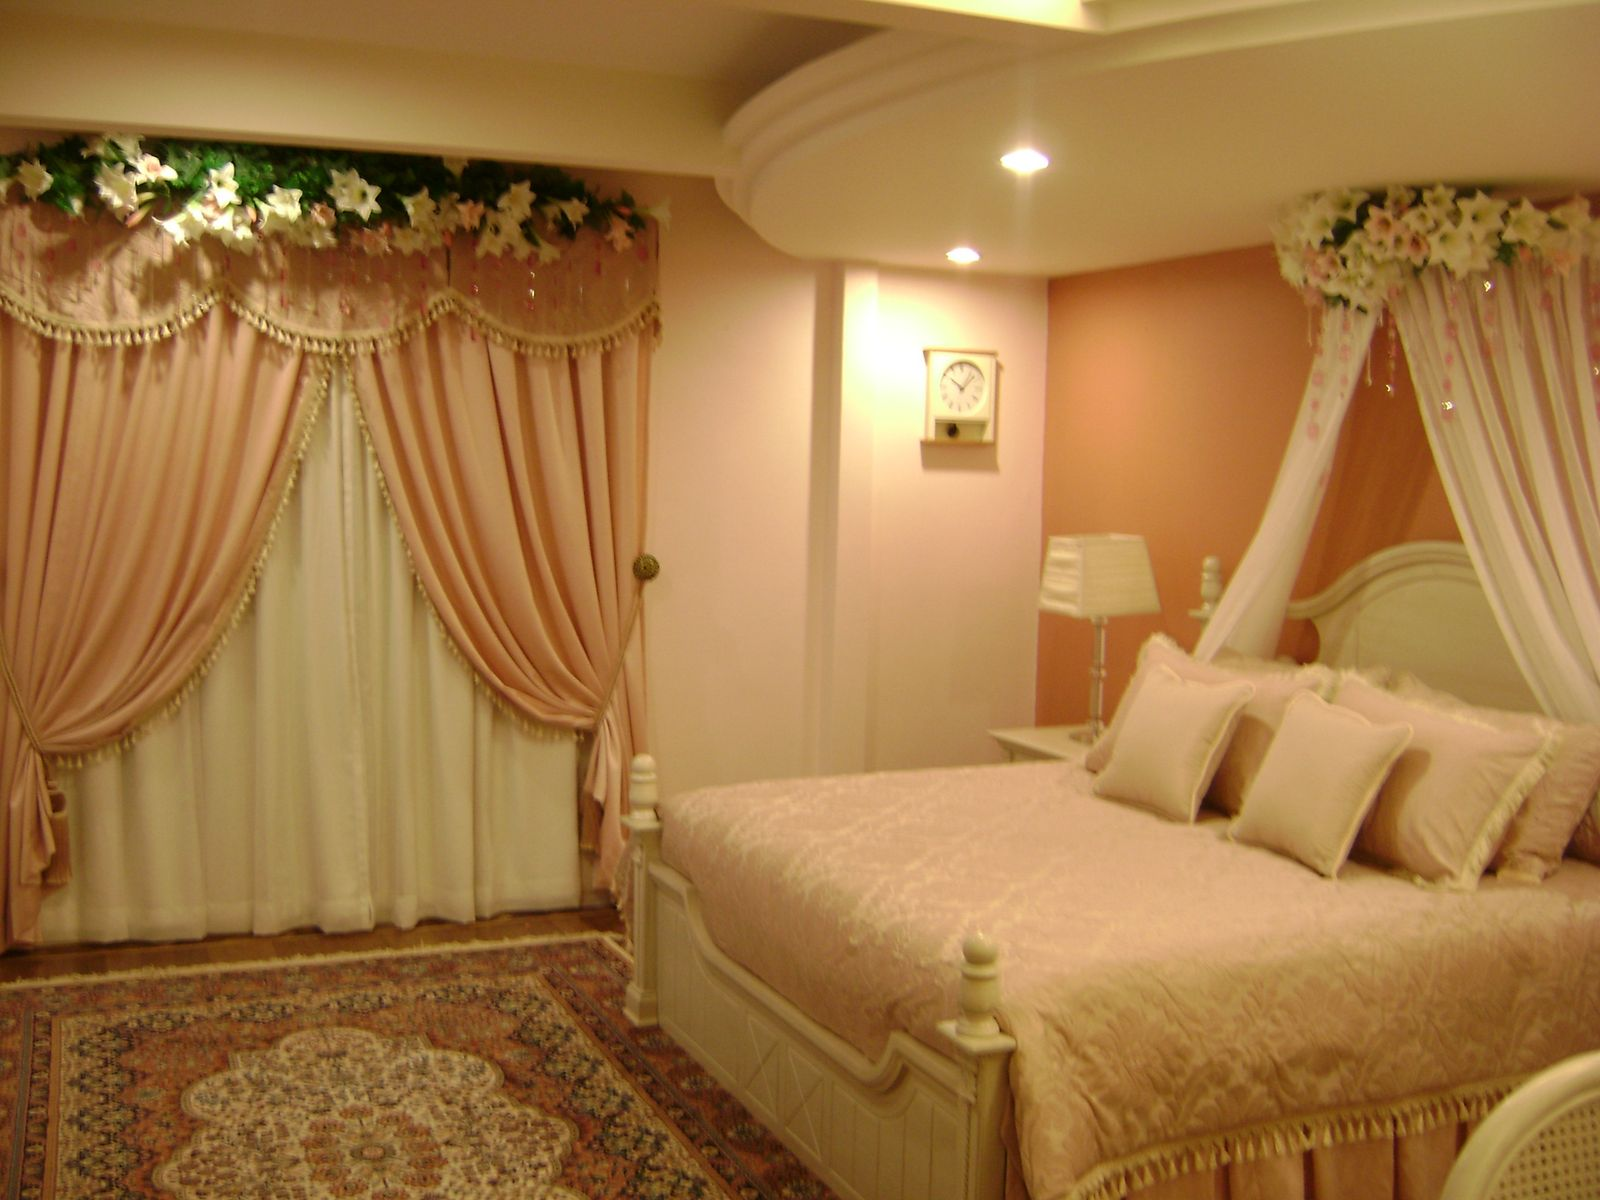 Girlsvilla wedding room decoration for Floral bedroom decor